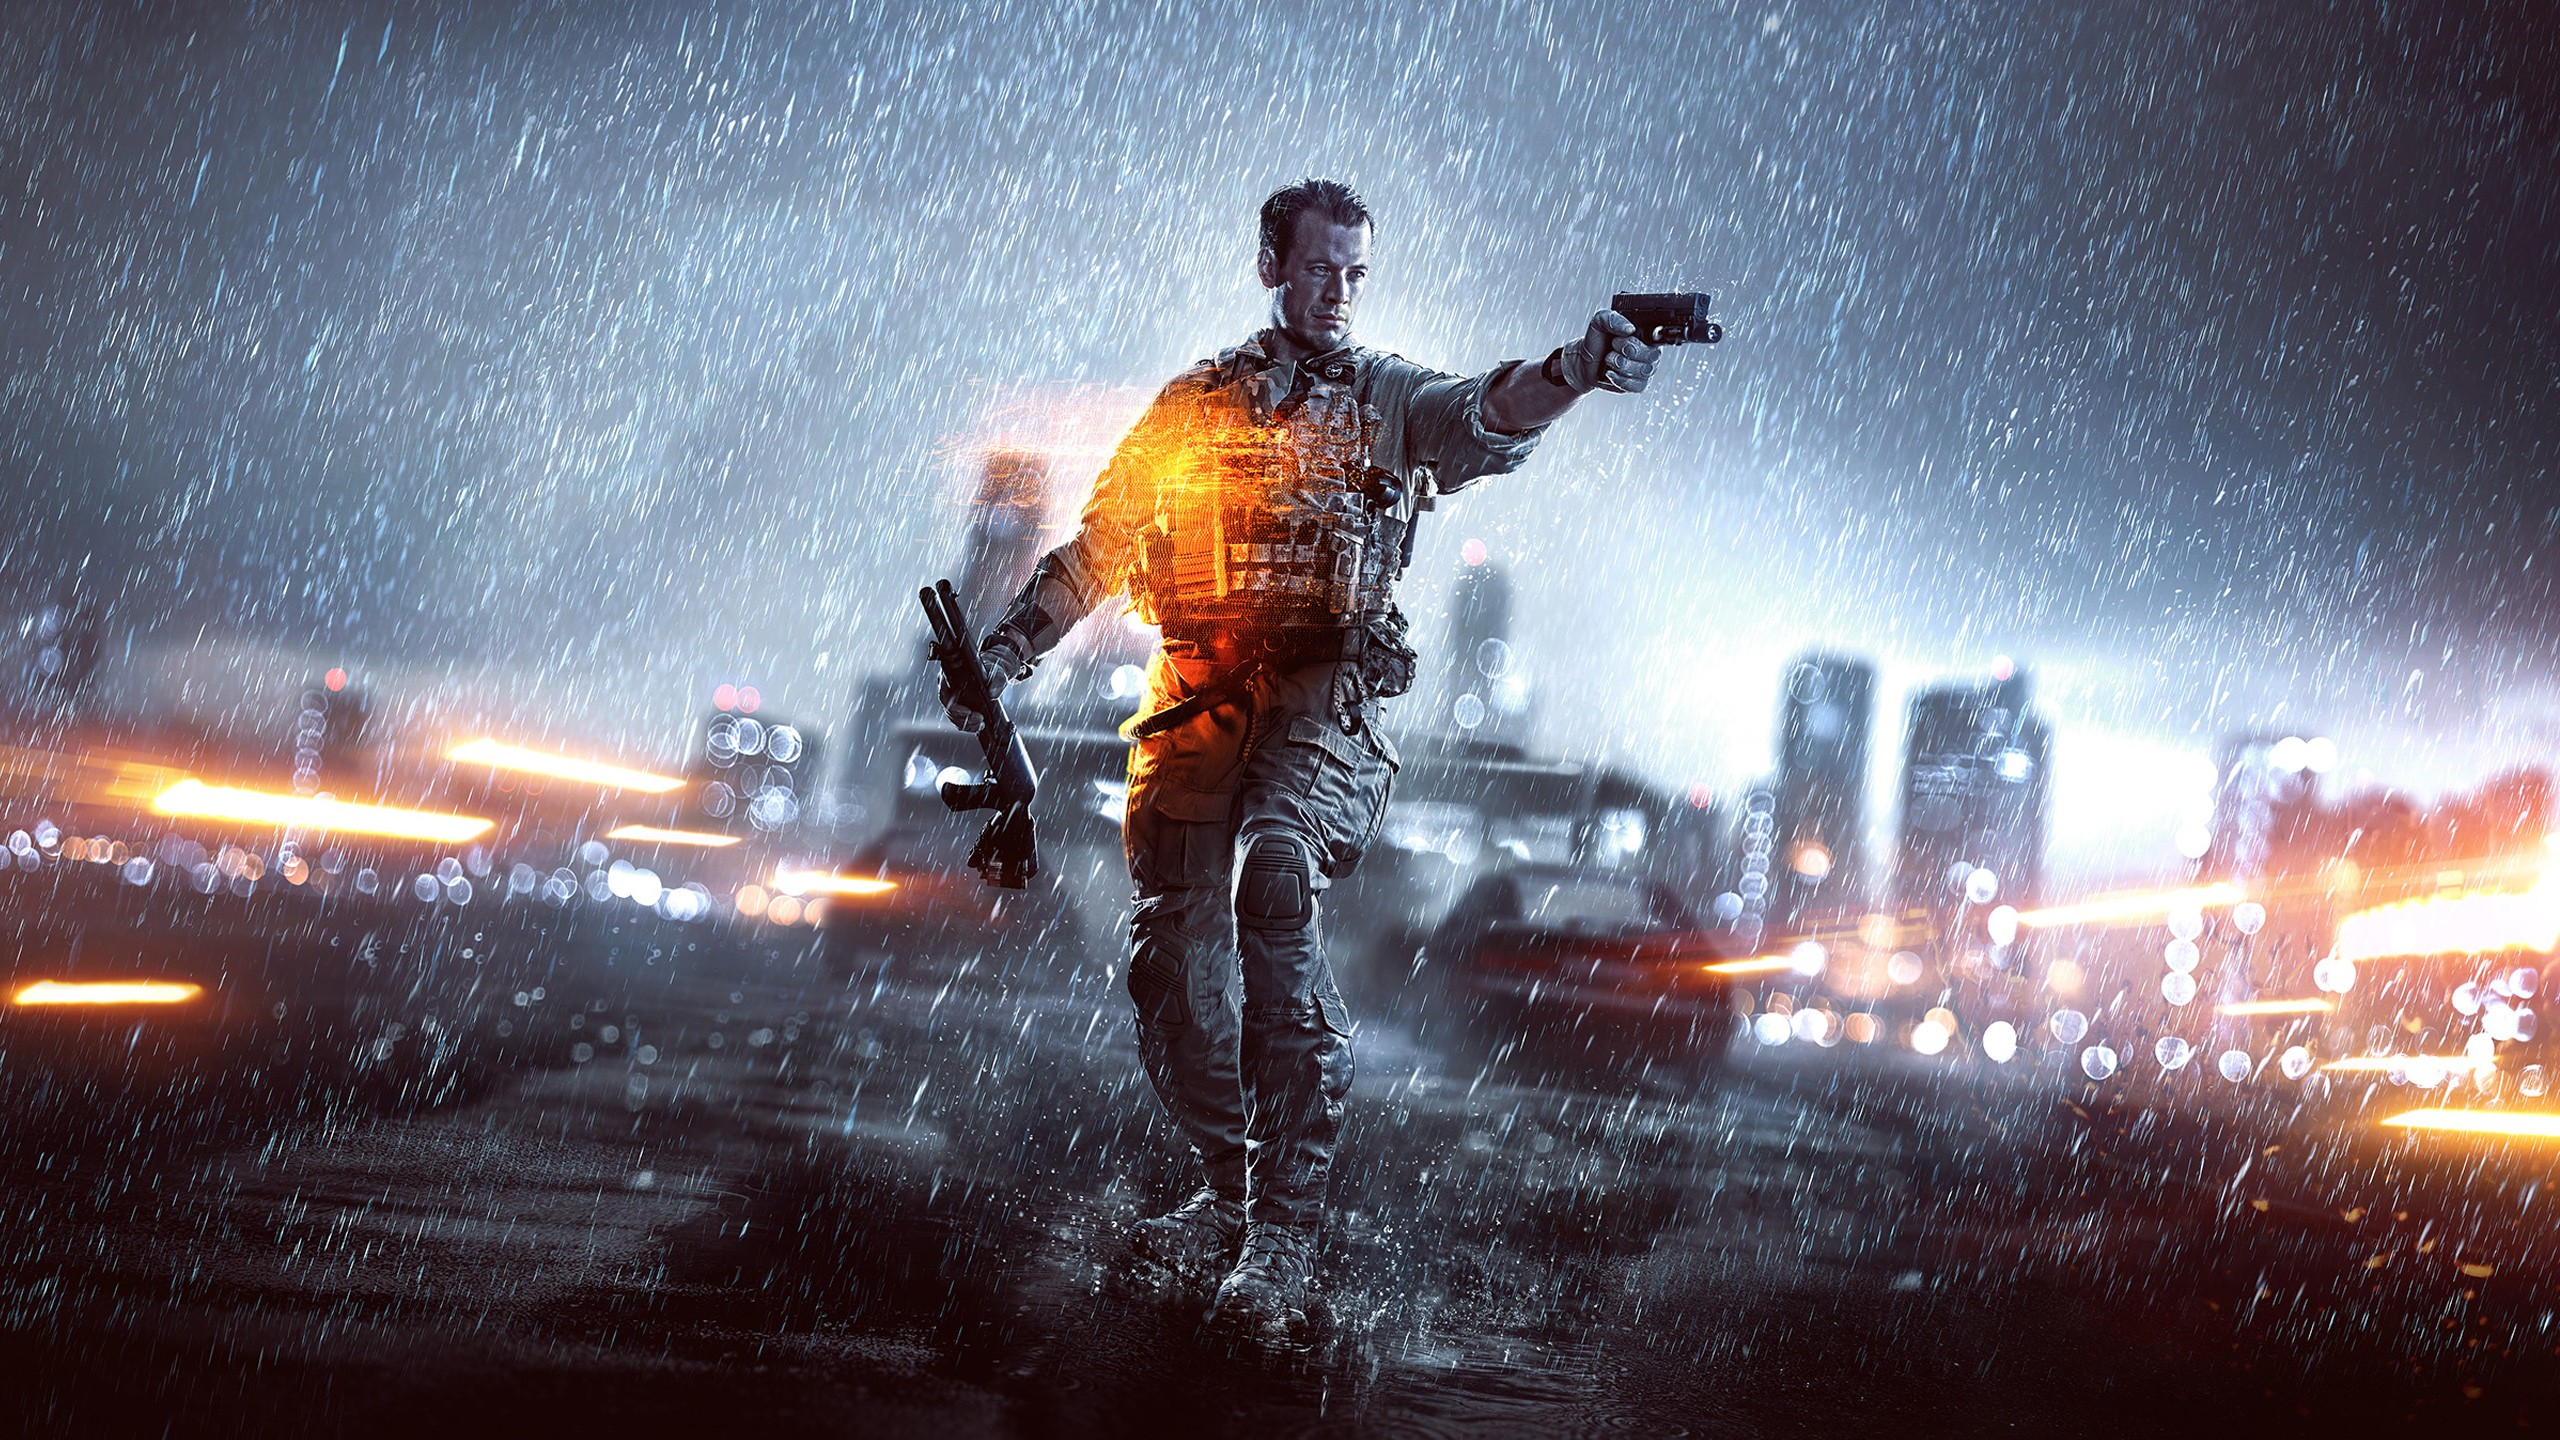 Battlefield 4 Games Wallpaper Hd: Battlefield 4 Battlefest, HD Games, 4k Wallpapers, Images